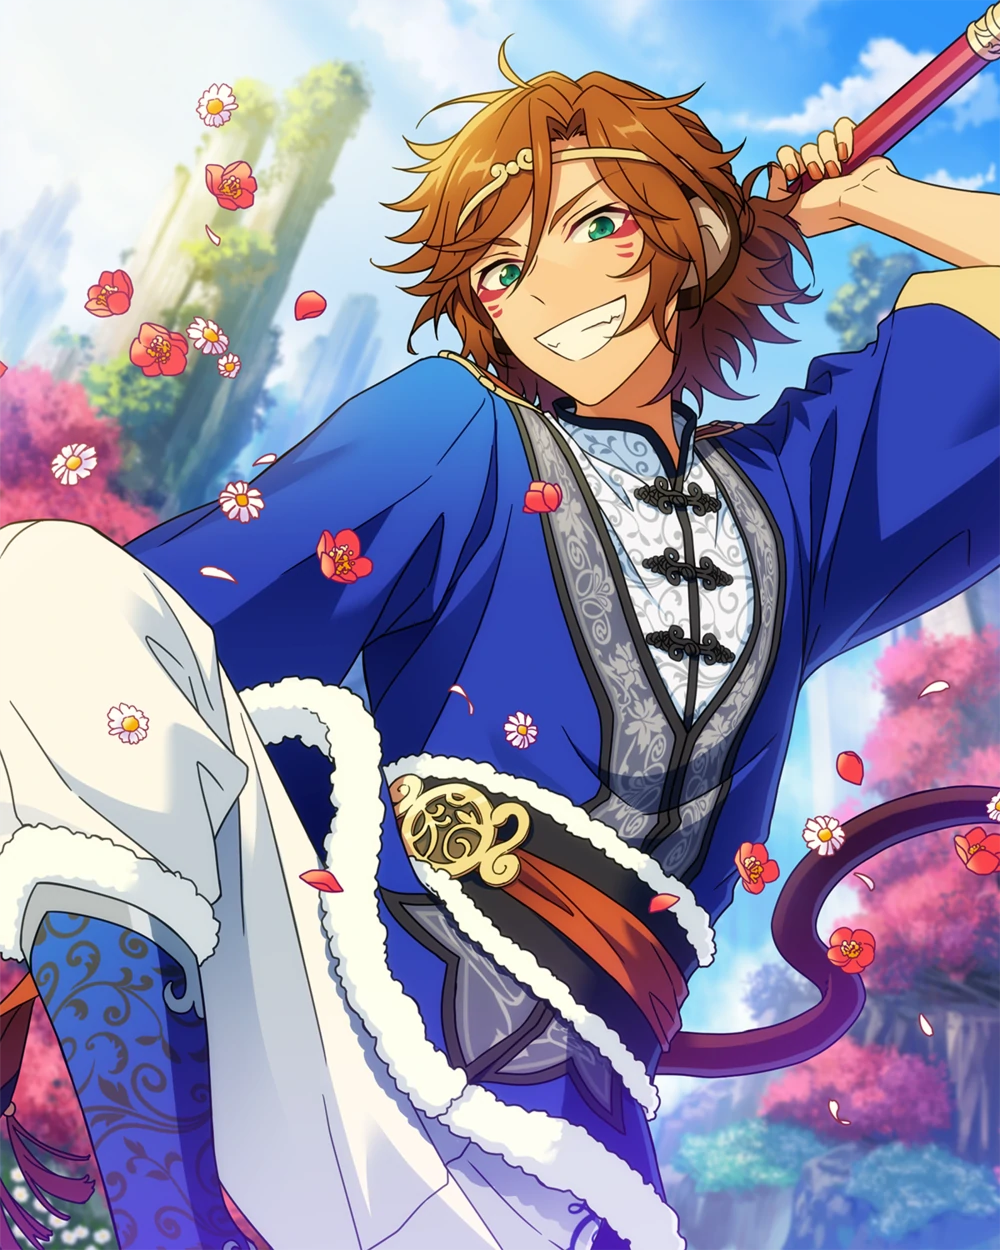 Pin by Joud on Ensemble Stars! Anime, Character